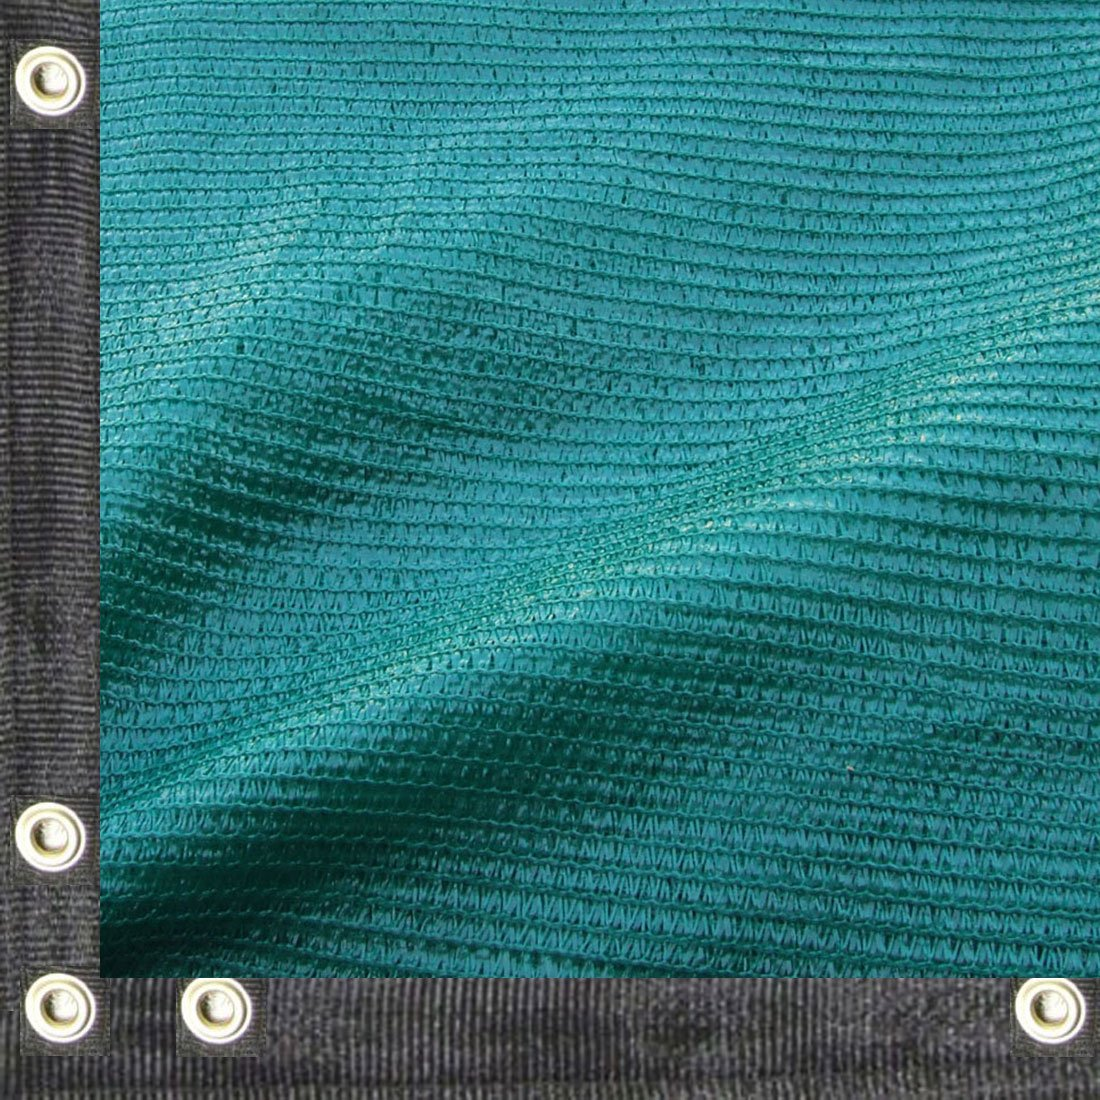 Yisin 50% Green Shade Cloth Taped Edge with Grommets UV 20 ft X 48 ft by EasyShade